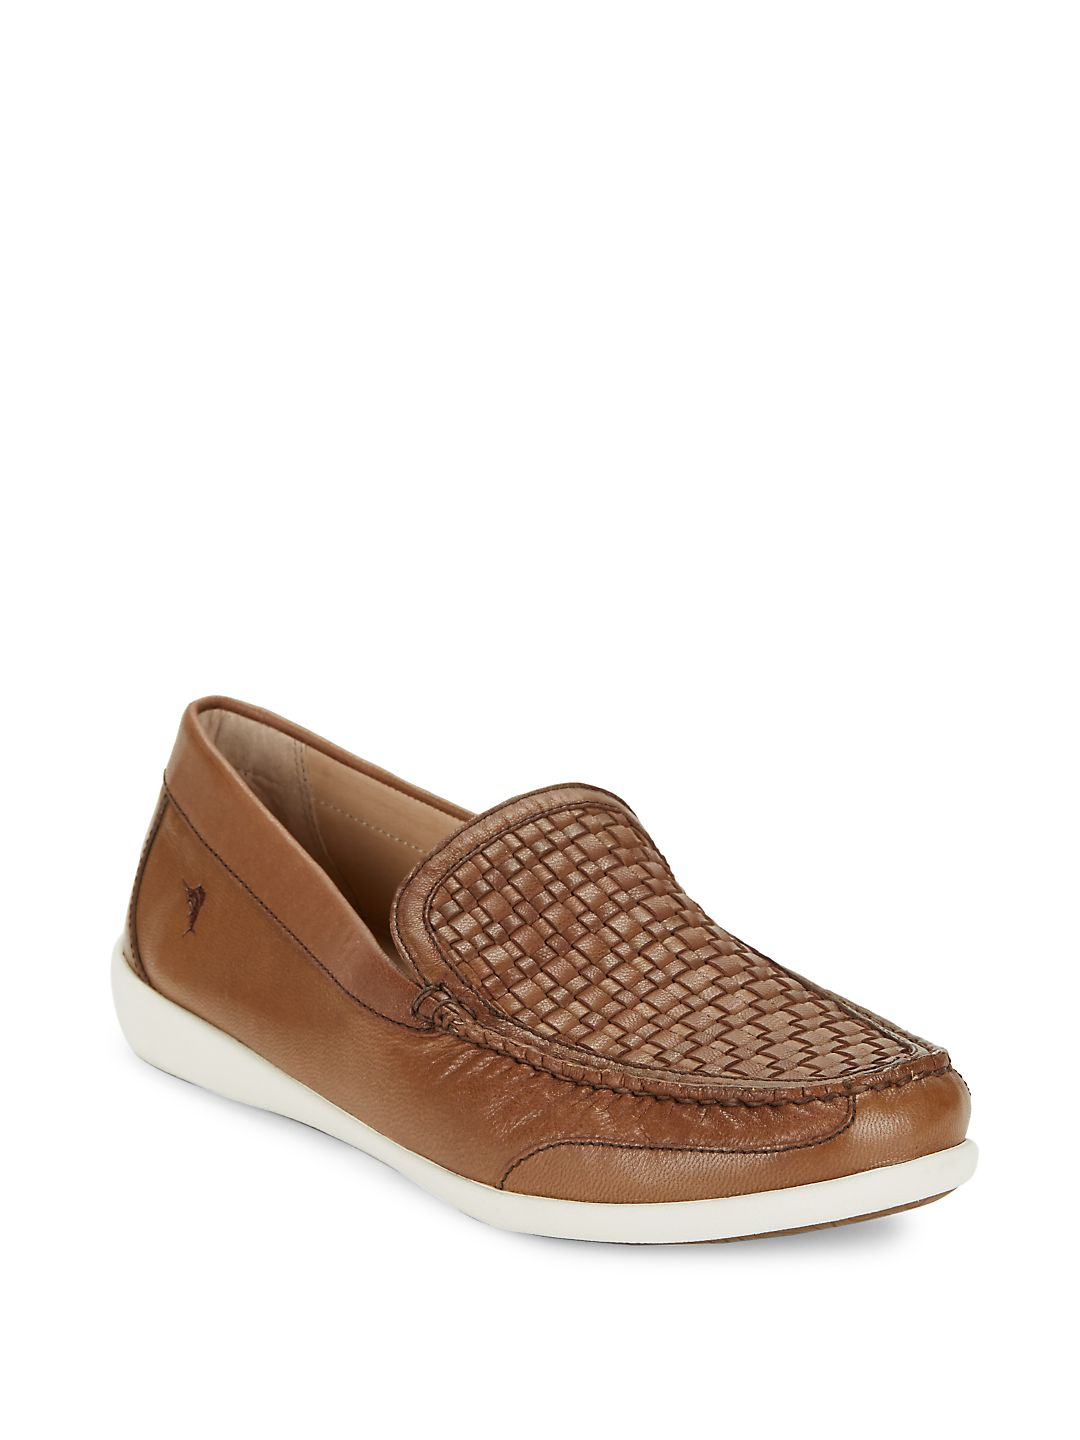 Basketweave Leather Loafers